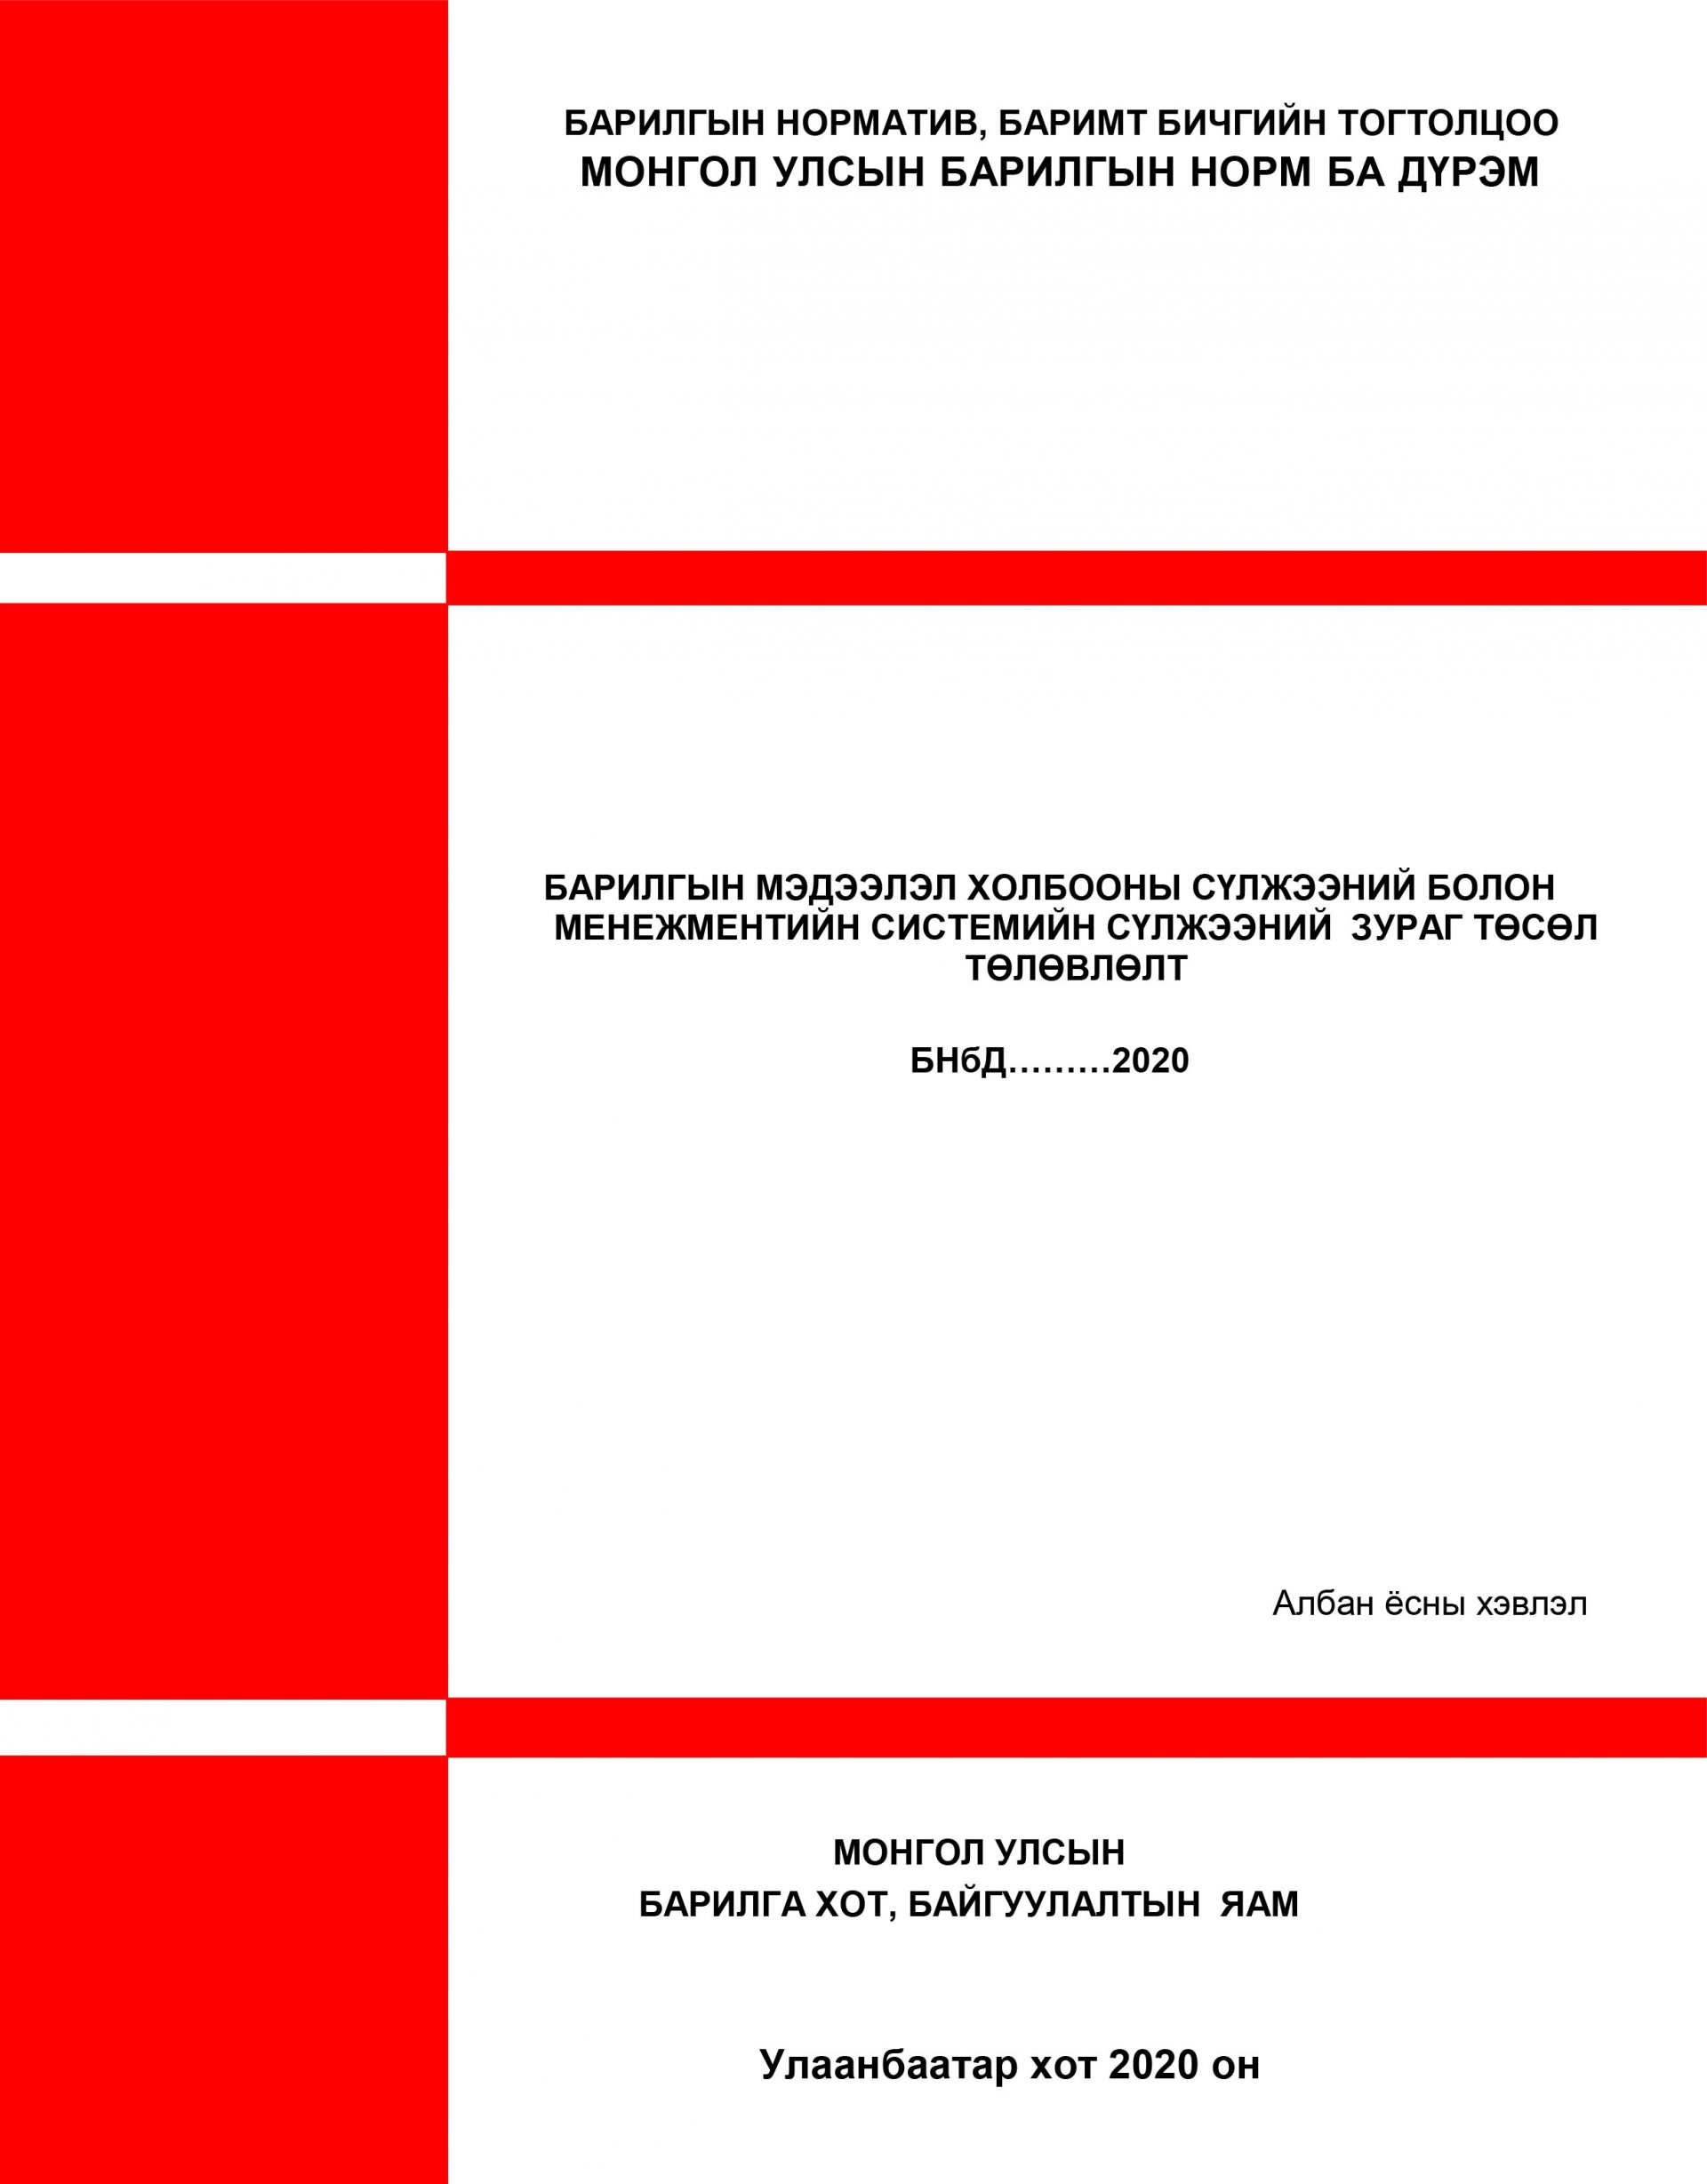 Construction norms and regulations of Mongolia